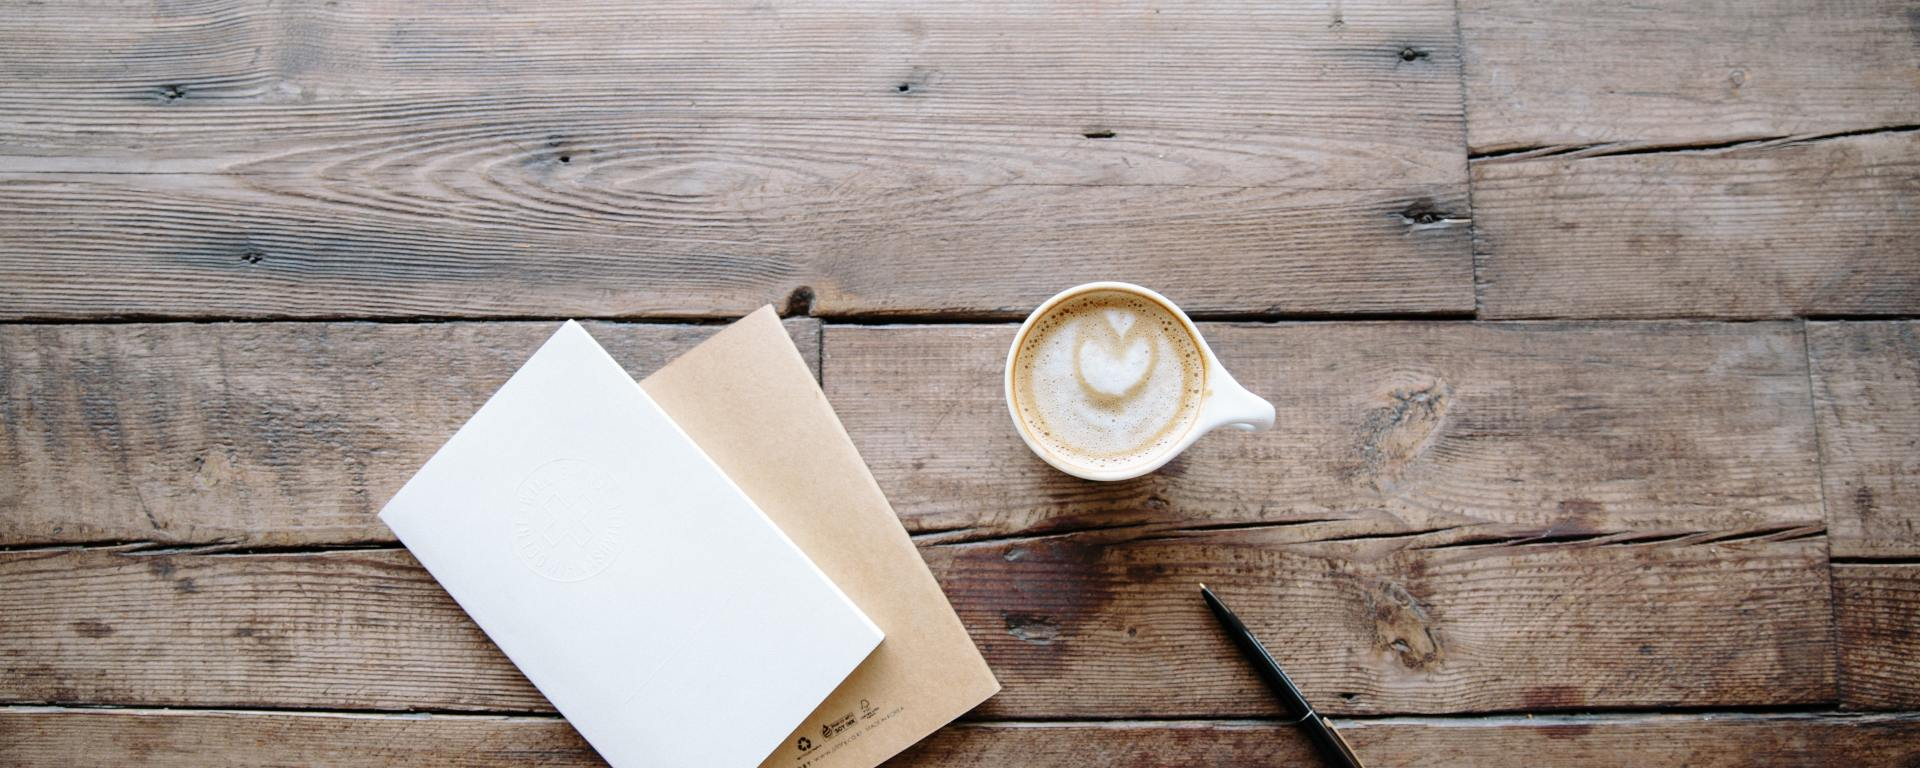 An image of a cup of coffee and two notebooks on a wooden table.